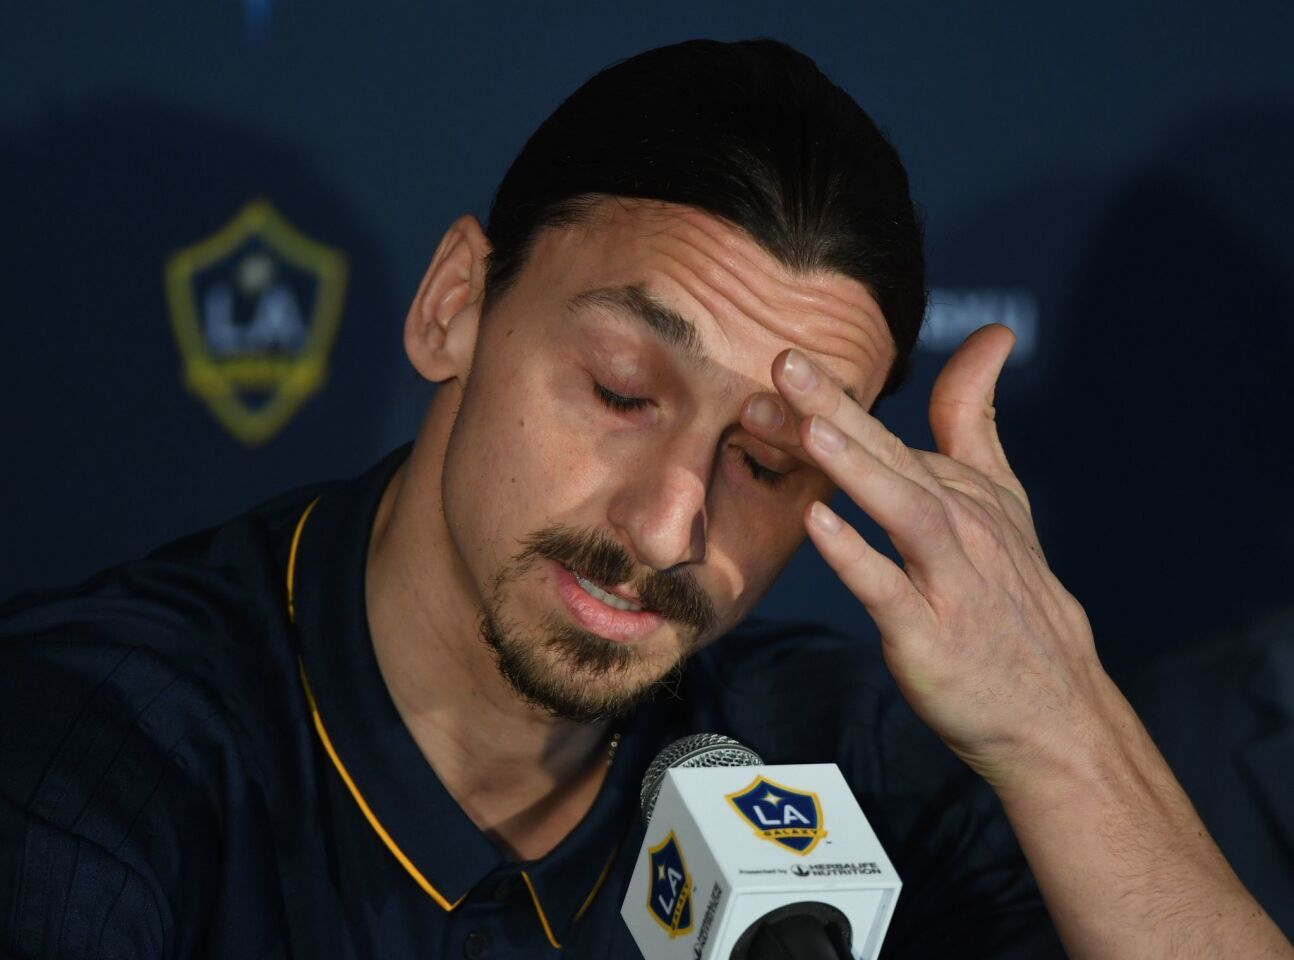 LA Galaxy footballer Zlatan Ibrahimovic gestures during his first press conference for the club in Los Angeles, California, on March 30, 2018. The 36-year-old Swedish striker's move to MLS from Manchester United was confirmed last week, with Ibrahimovic swiftly vowing to reignite the Galaxy's fortunes after they finished bottom of the league last season. / AFP PHOTO / Mark RalstonMARK RALSTON/AFP/Getty Images ** OUTS - ELSENT, FPG, CM - OUTS * NM, PH, VA if sourced by CT, LA or MoD **